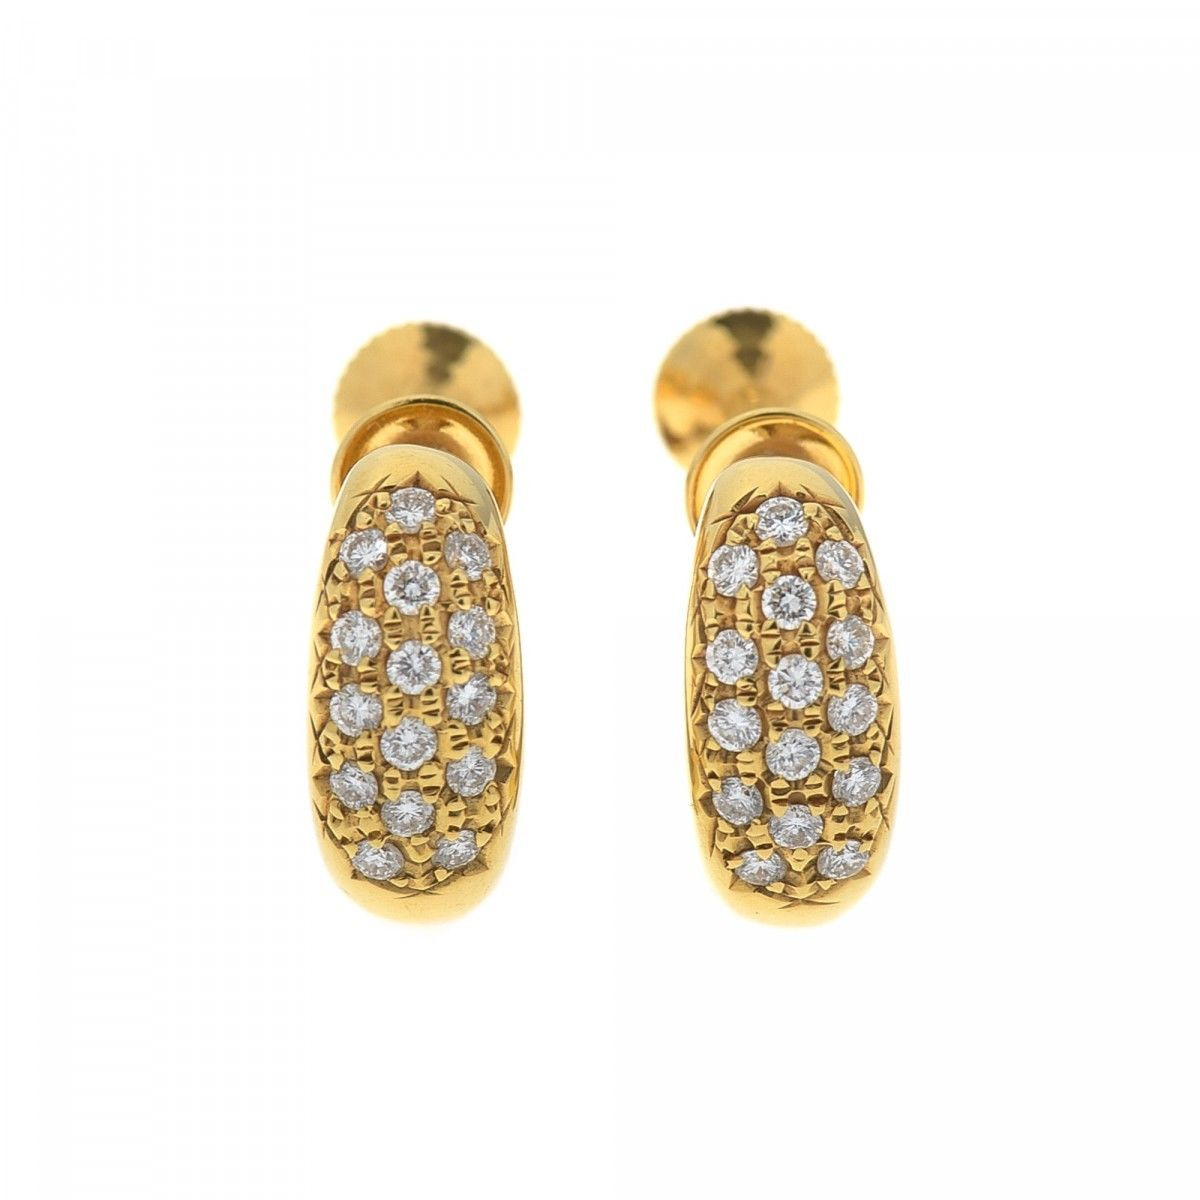 Estate Jewelry Diamond Earrings 18k Gold And Lxrandco Pre Owned Luxury Vintage